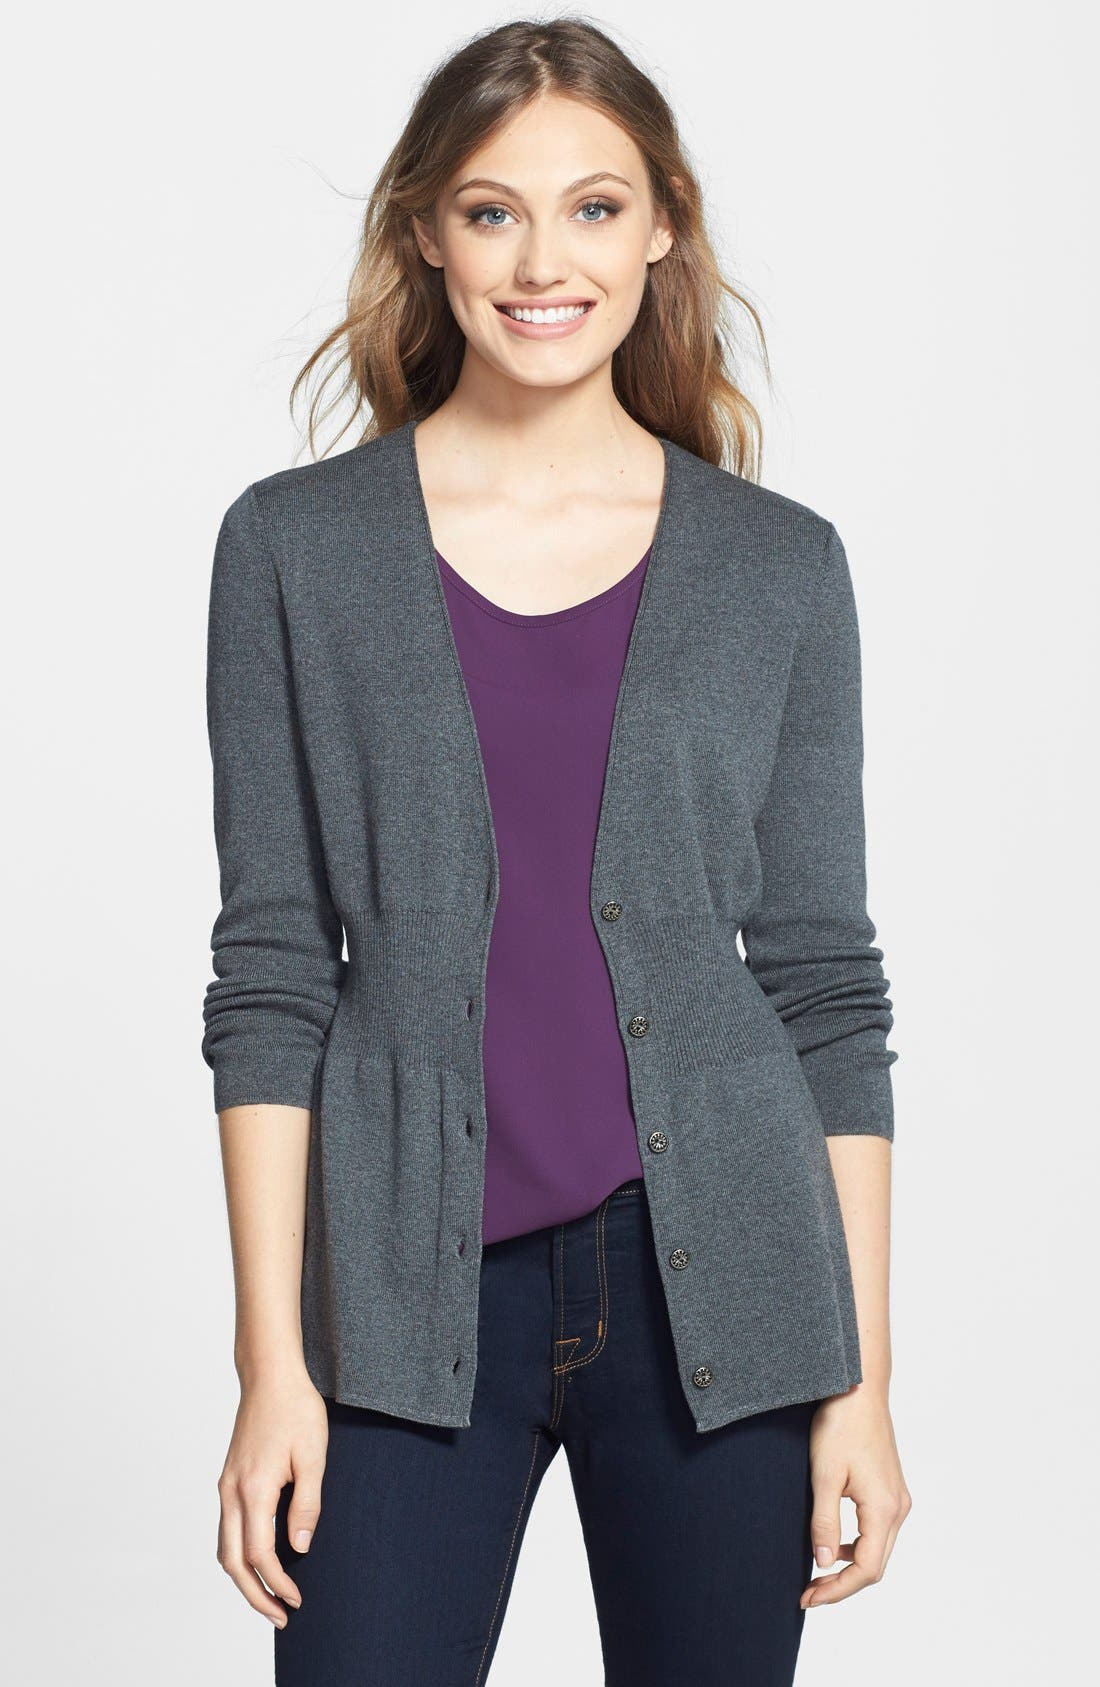 Alternate Image 1 Selected - NIC+ZOE 'Back of the Chair' V-Neck Cardigan (Petite)